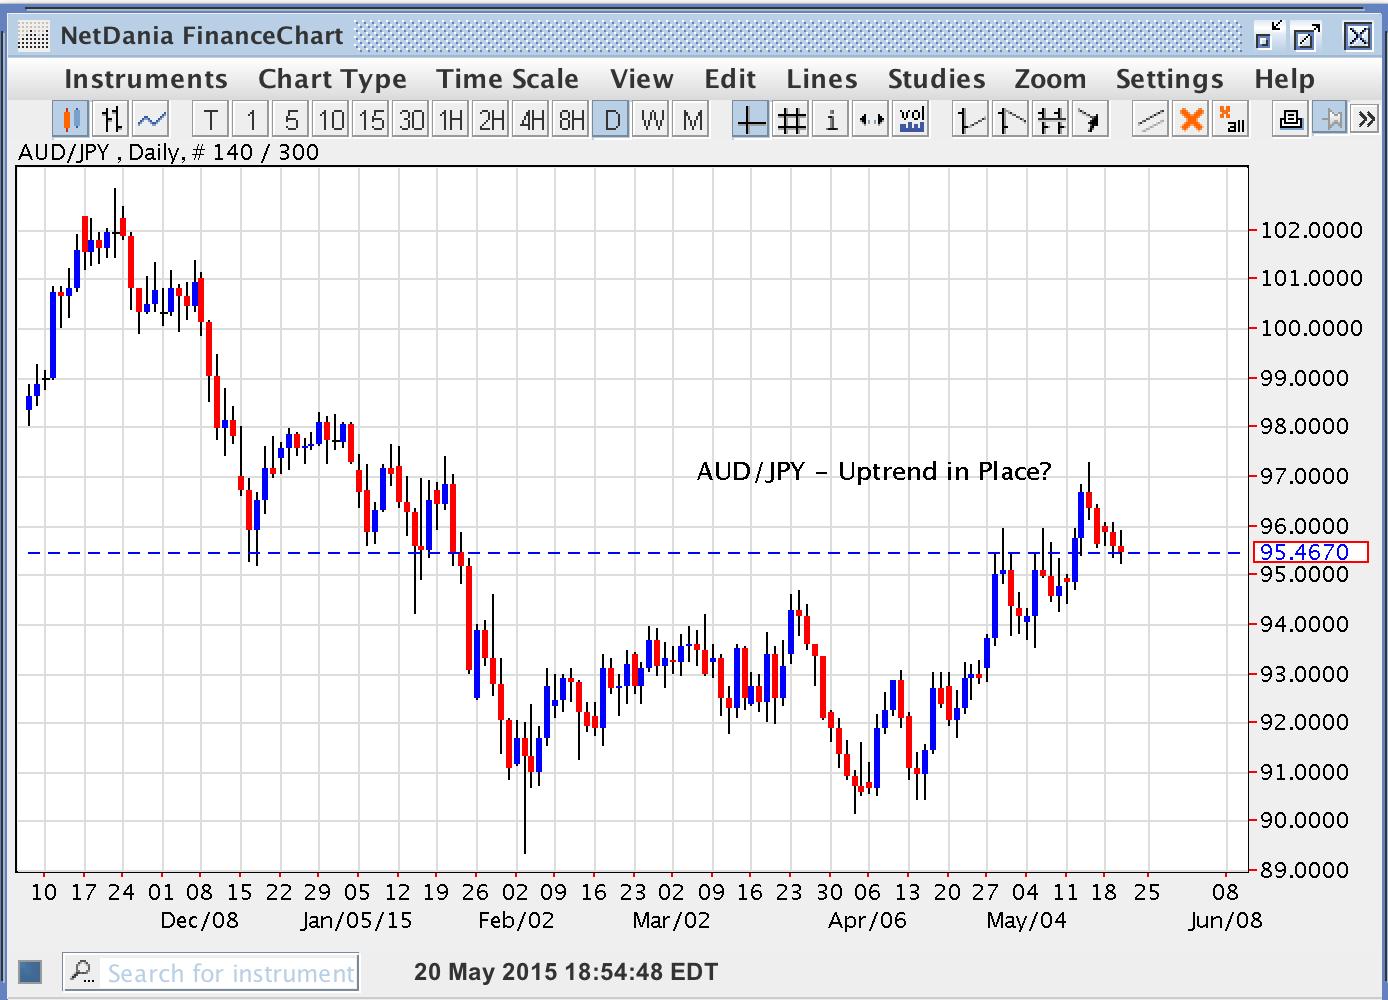 AUD/JPY – Uptrend in Place?